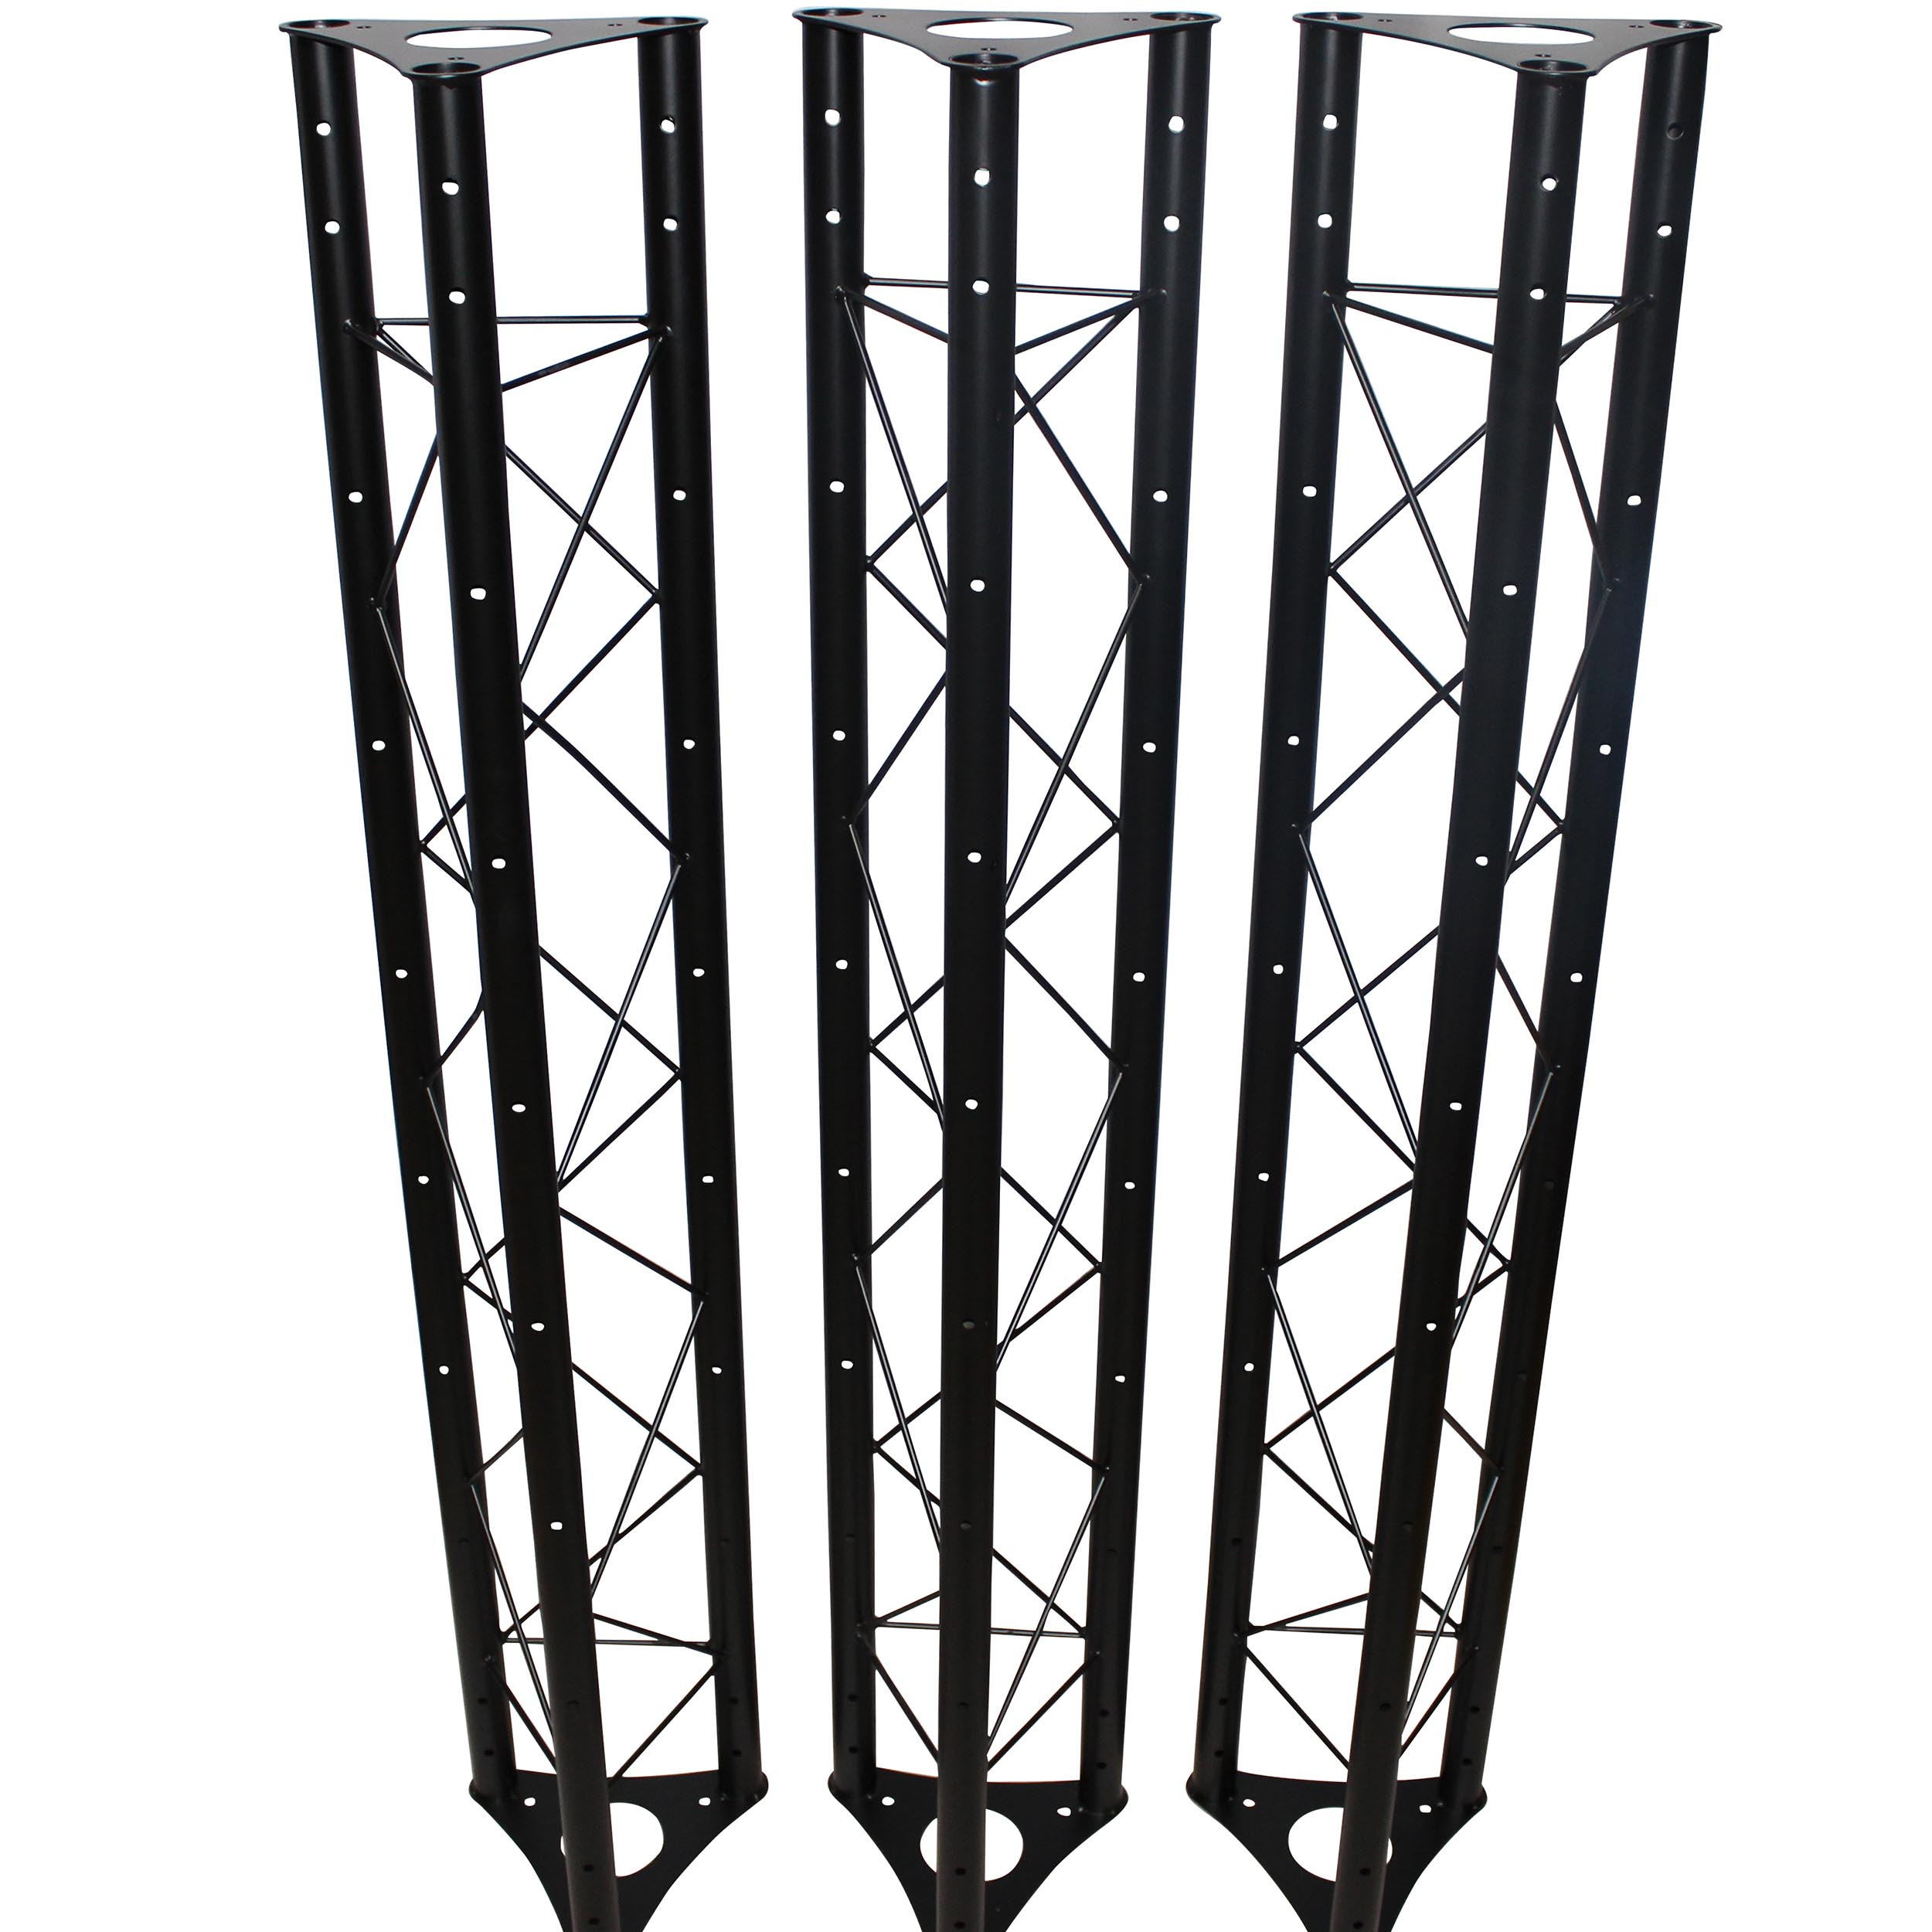 Prox T Ls35c Triangle Truss With Crank System 15ft Wide